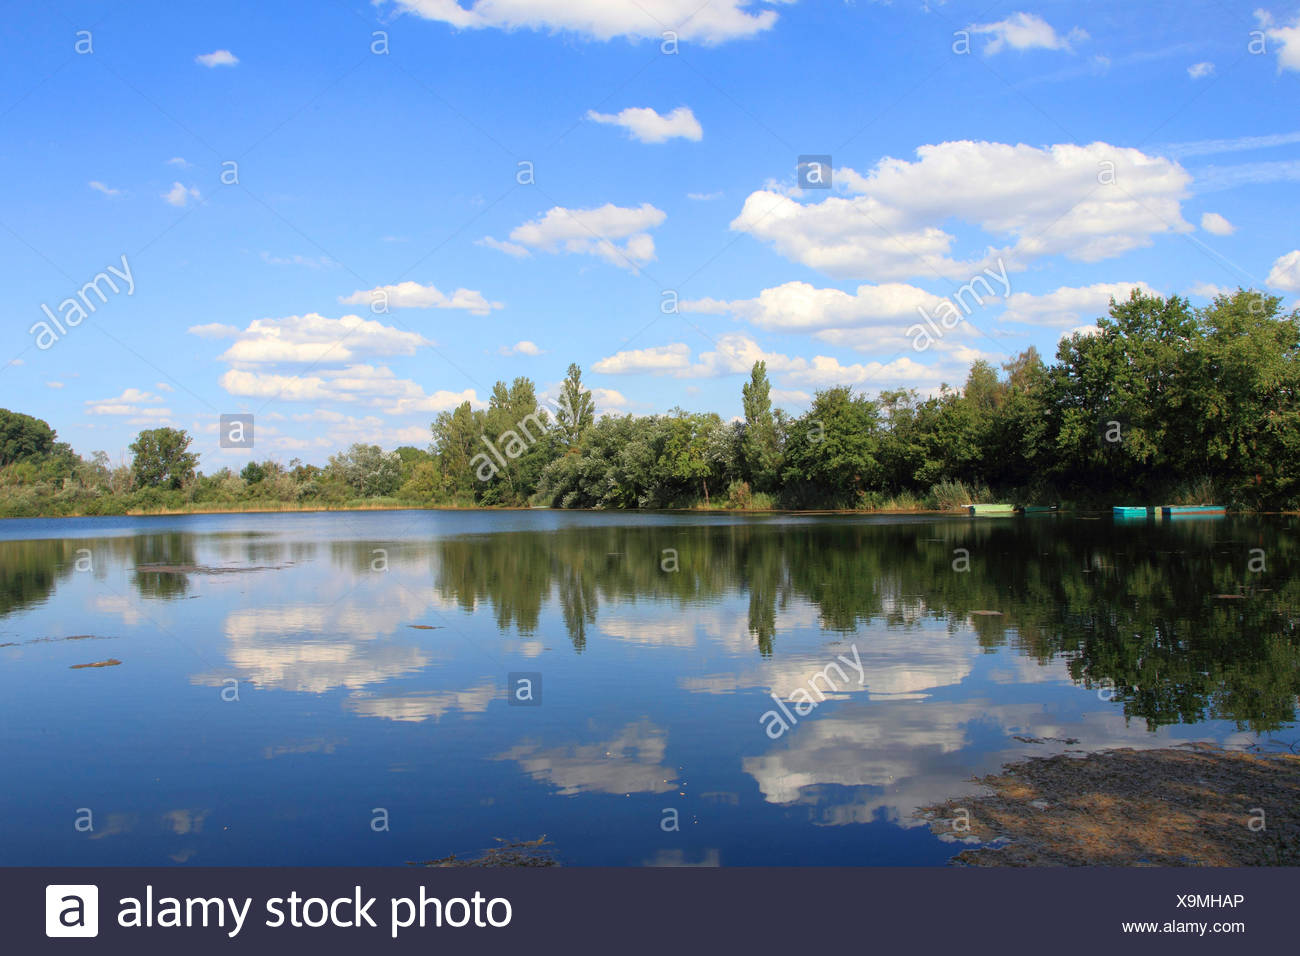 oxbow lake Altrhein in summer, Germany - Stock Image